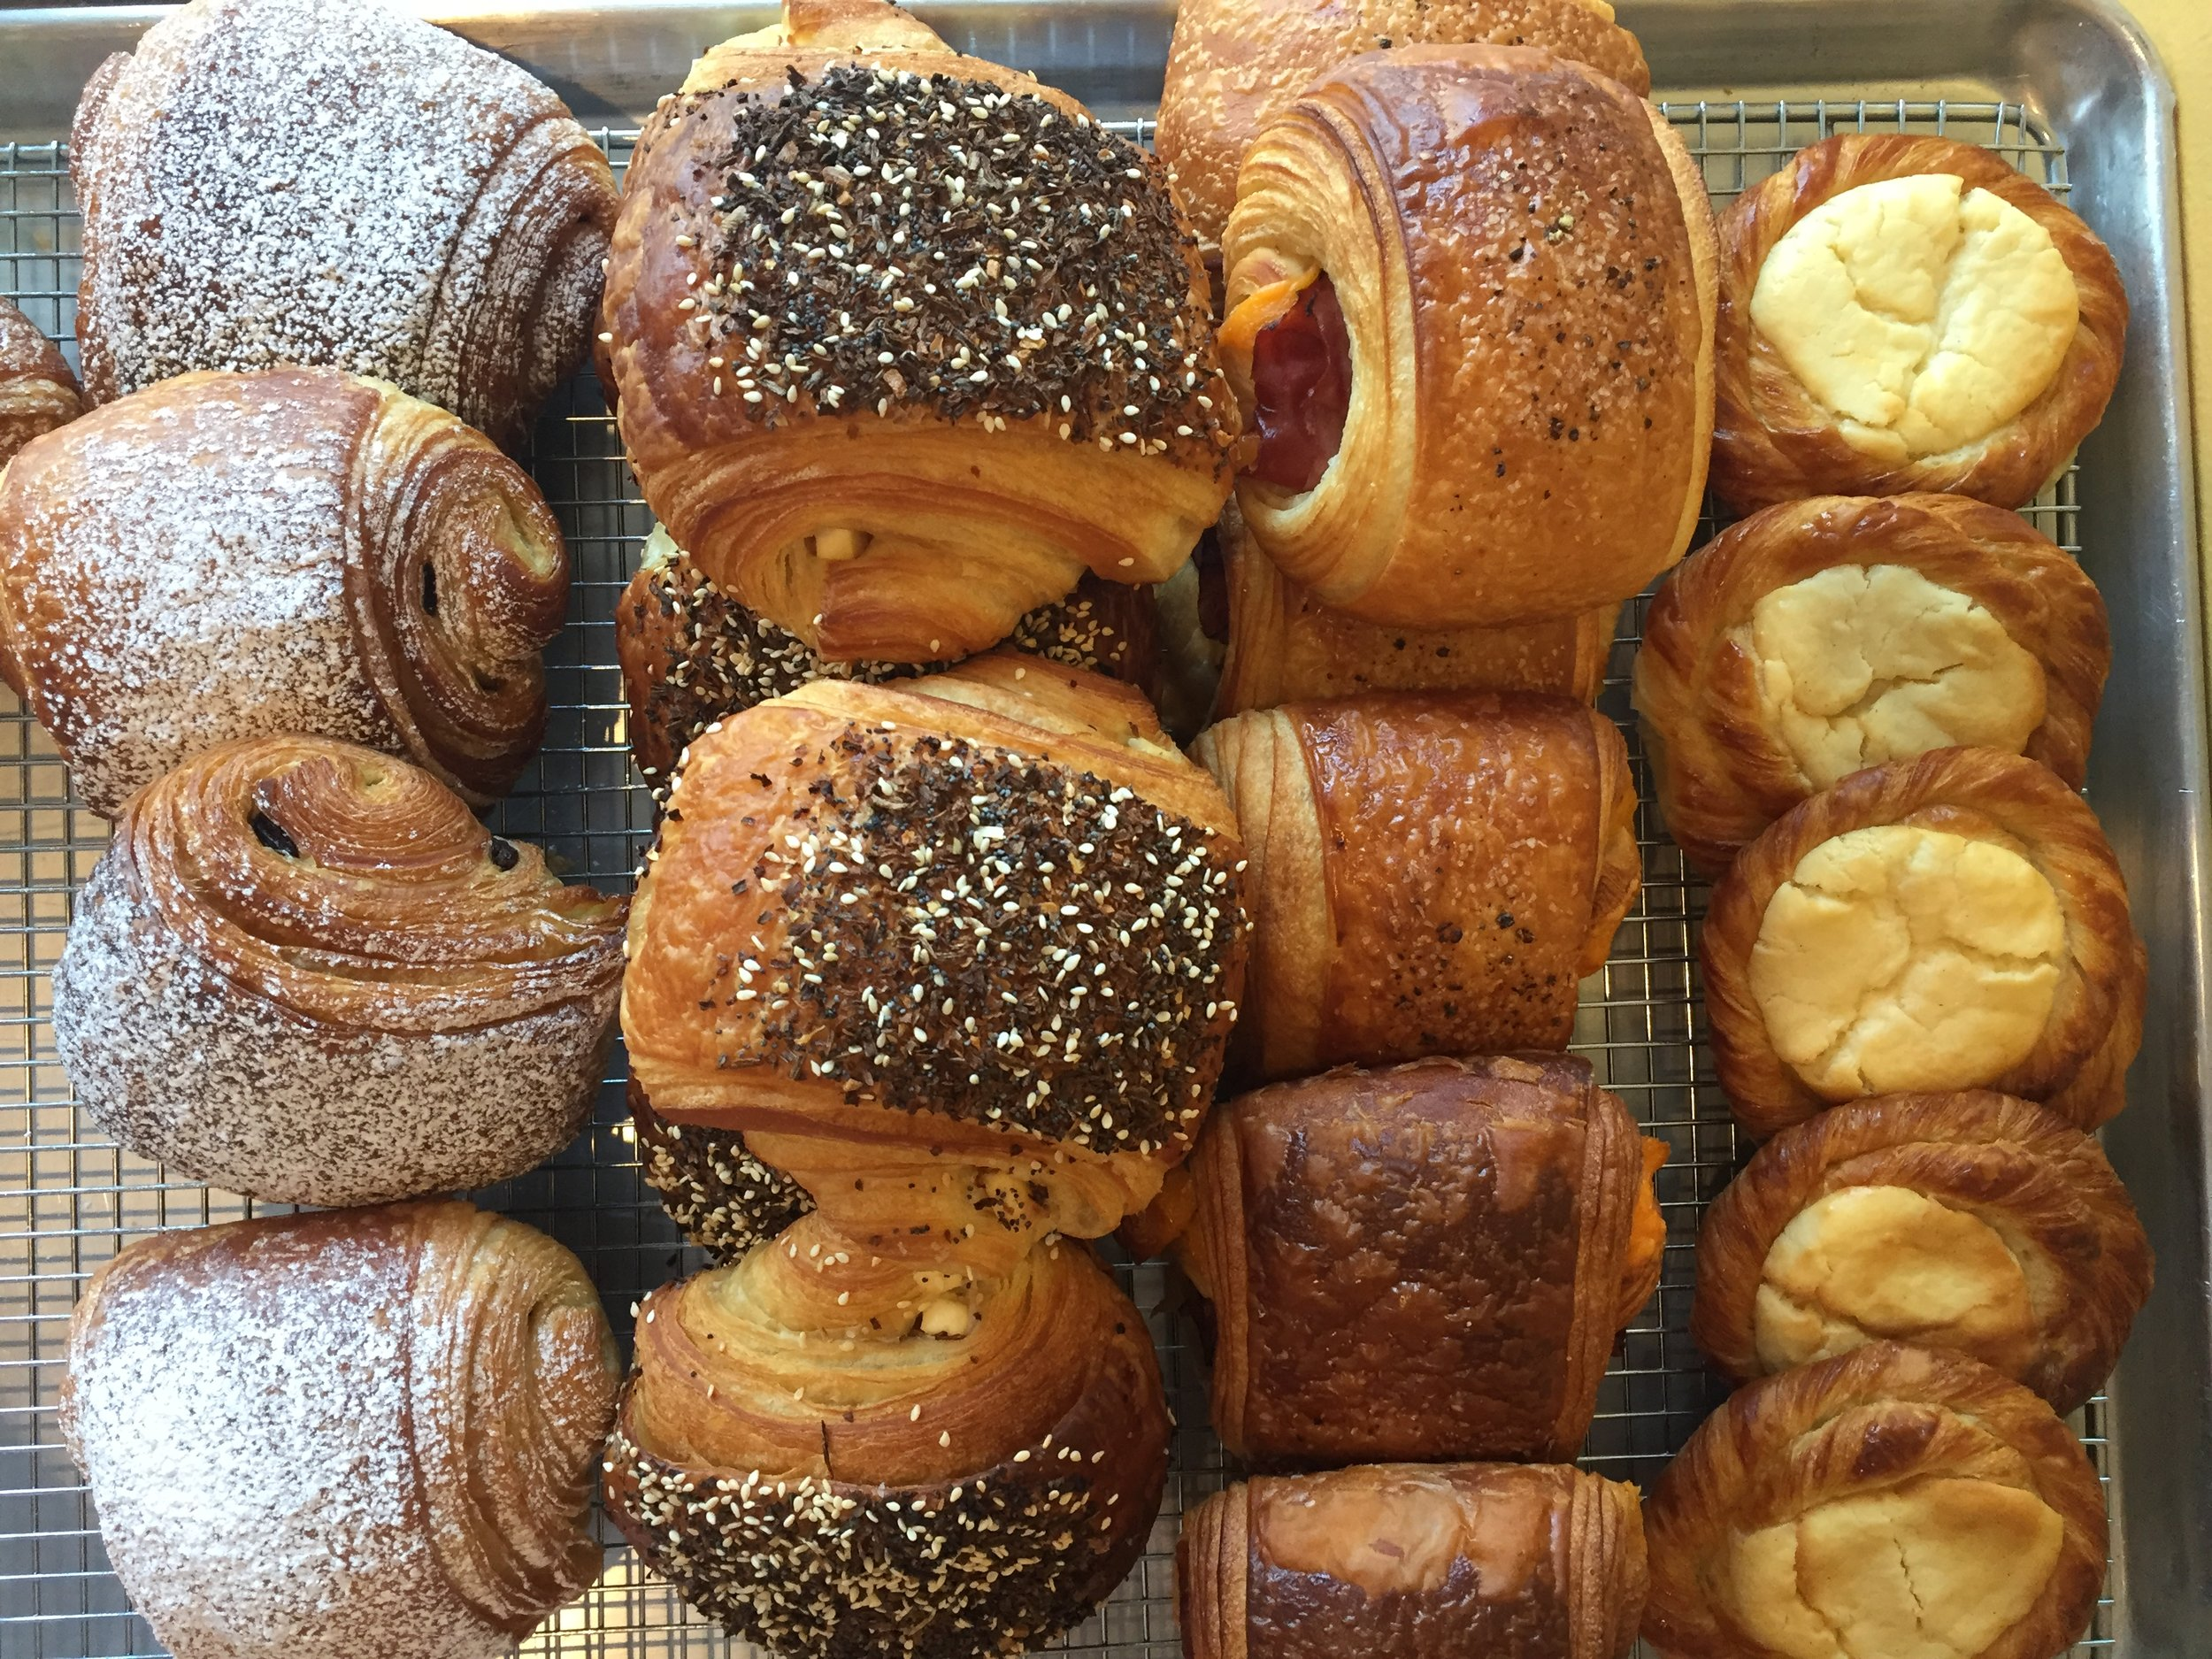 Chocolate Croissants • Sesame Croissants • Bacon + Cheddar Croissants • Cheese Danishes